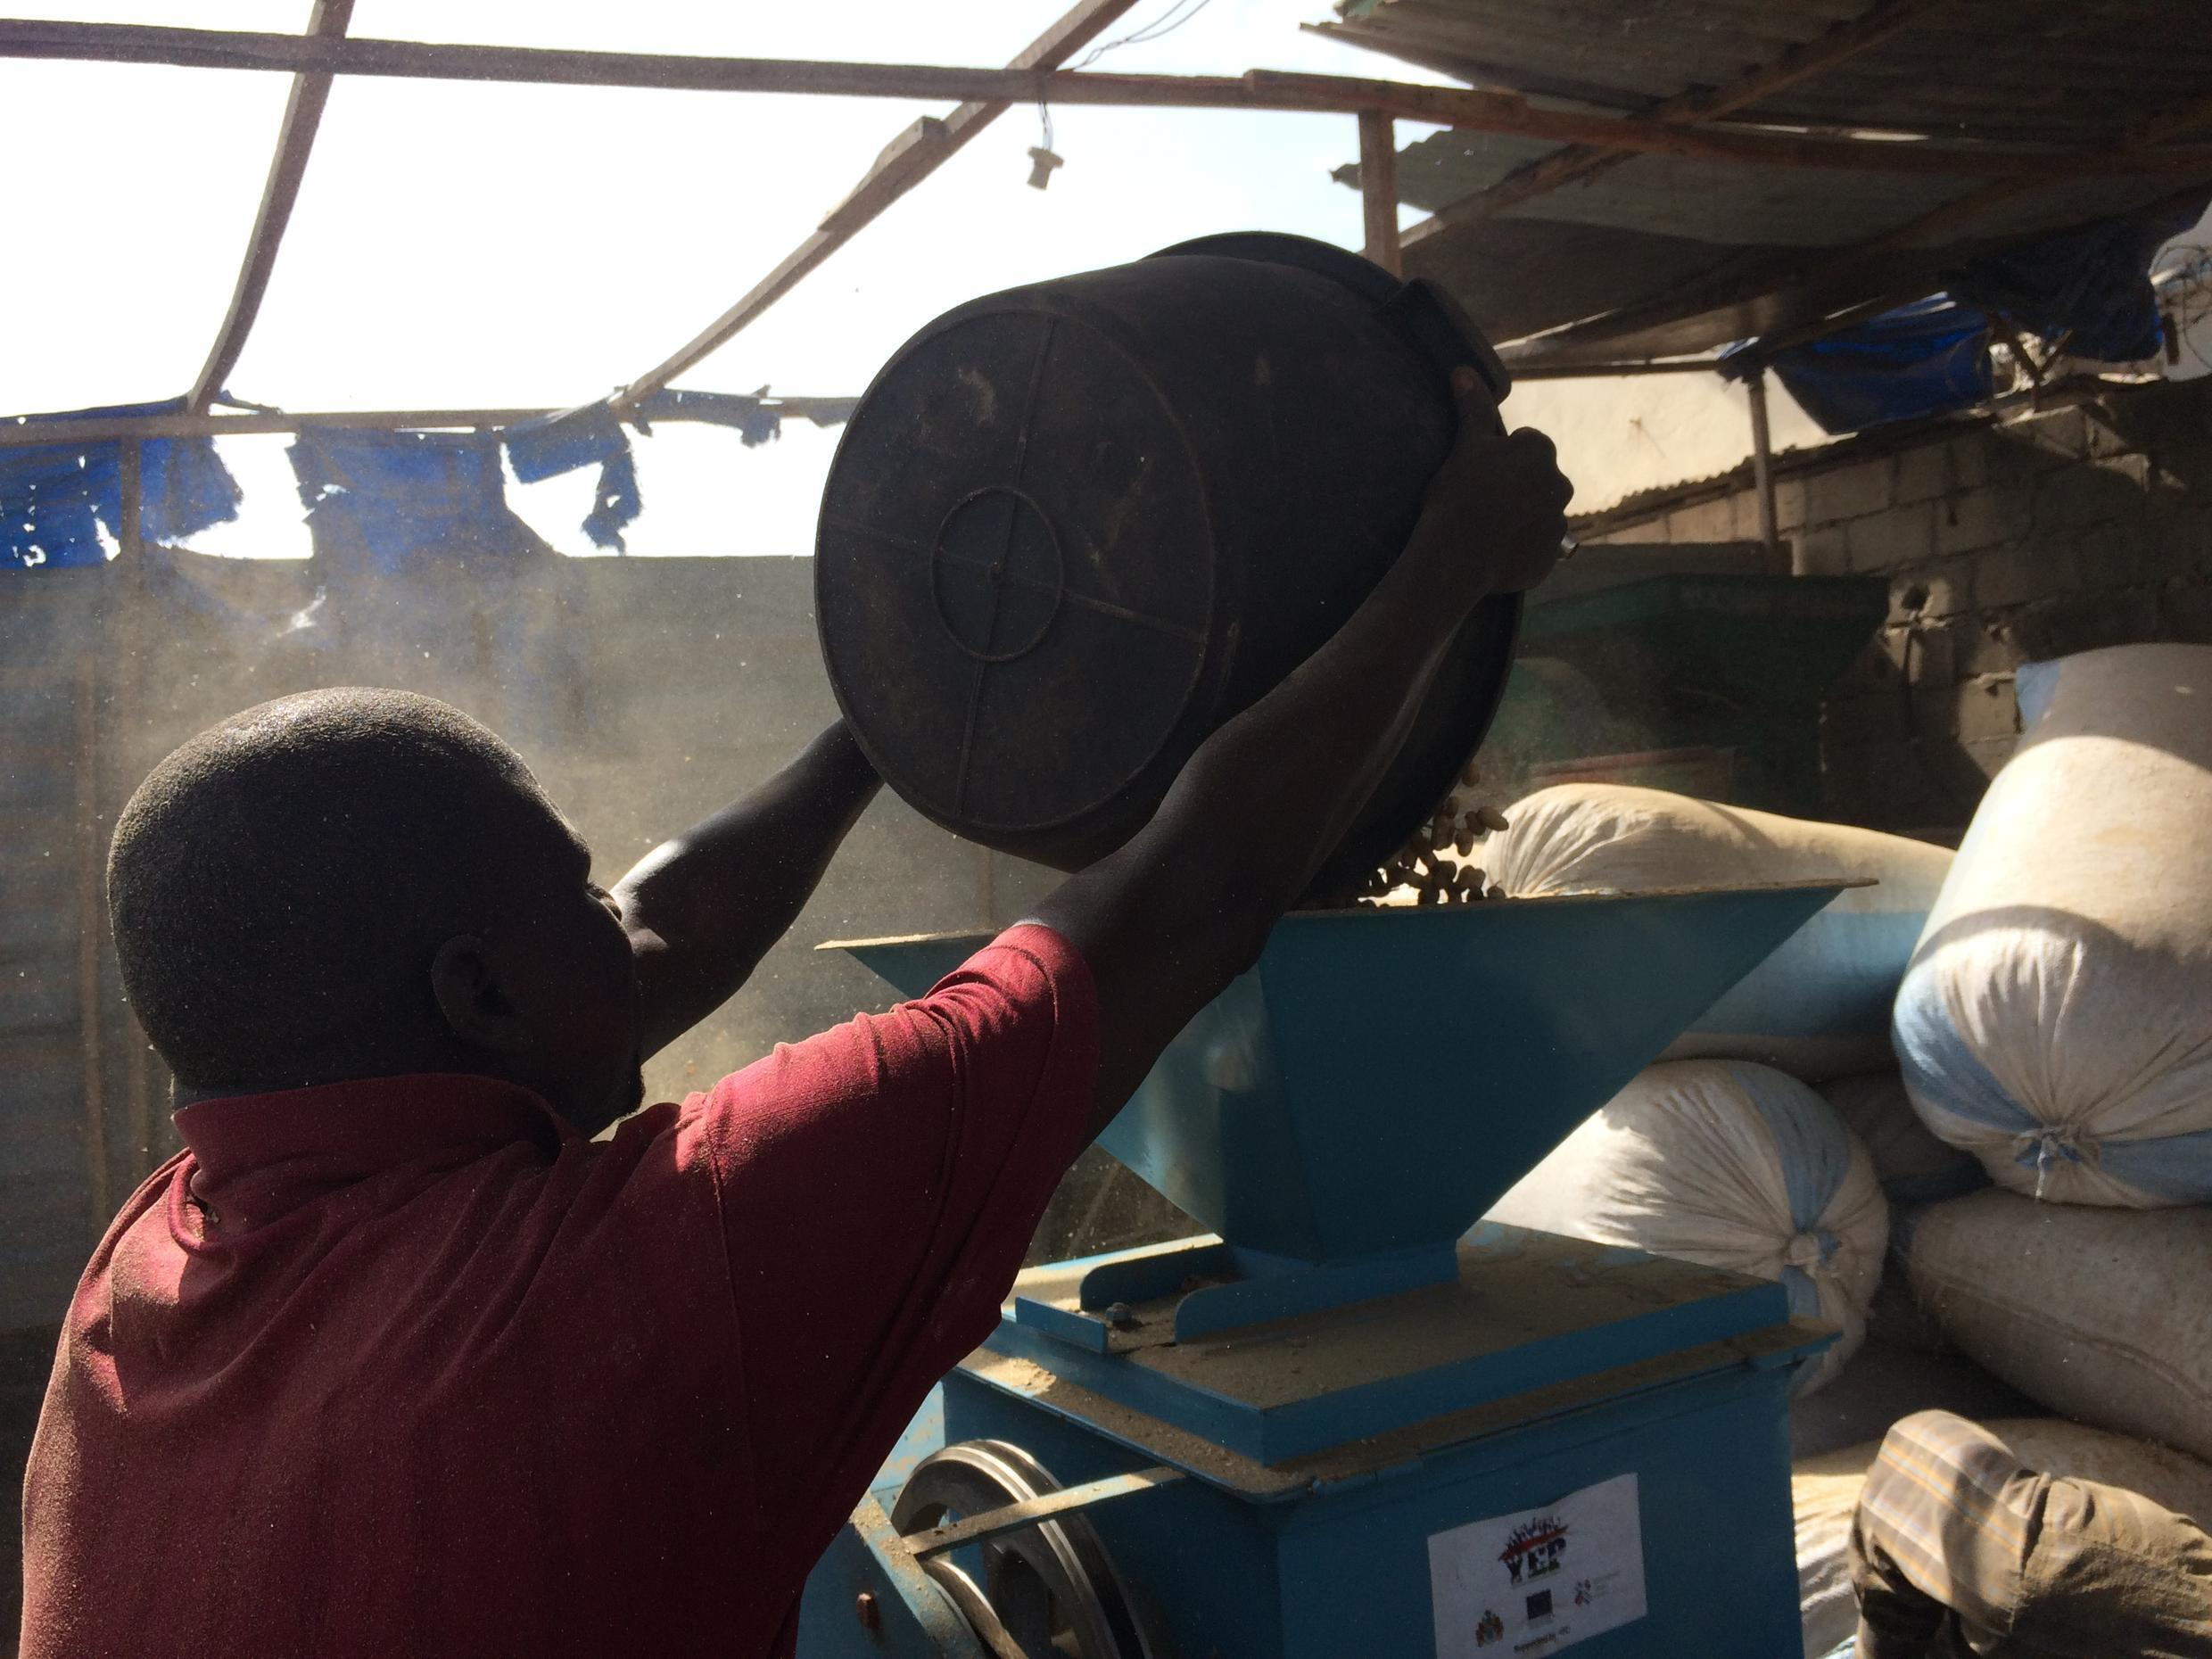 The de-shelling machine removes the groundnut from the shell.